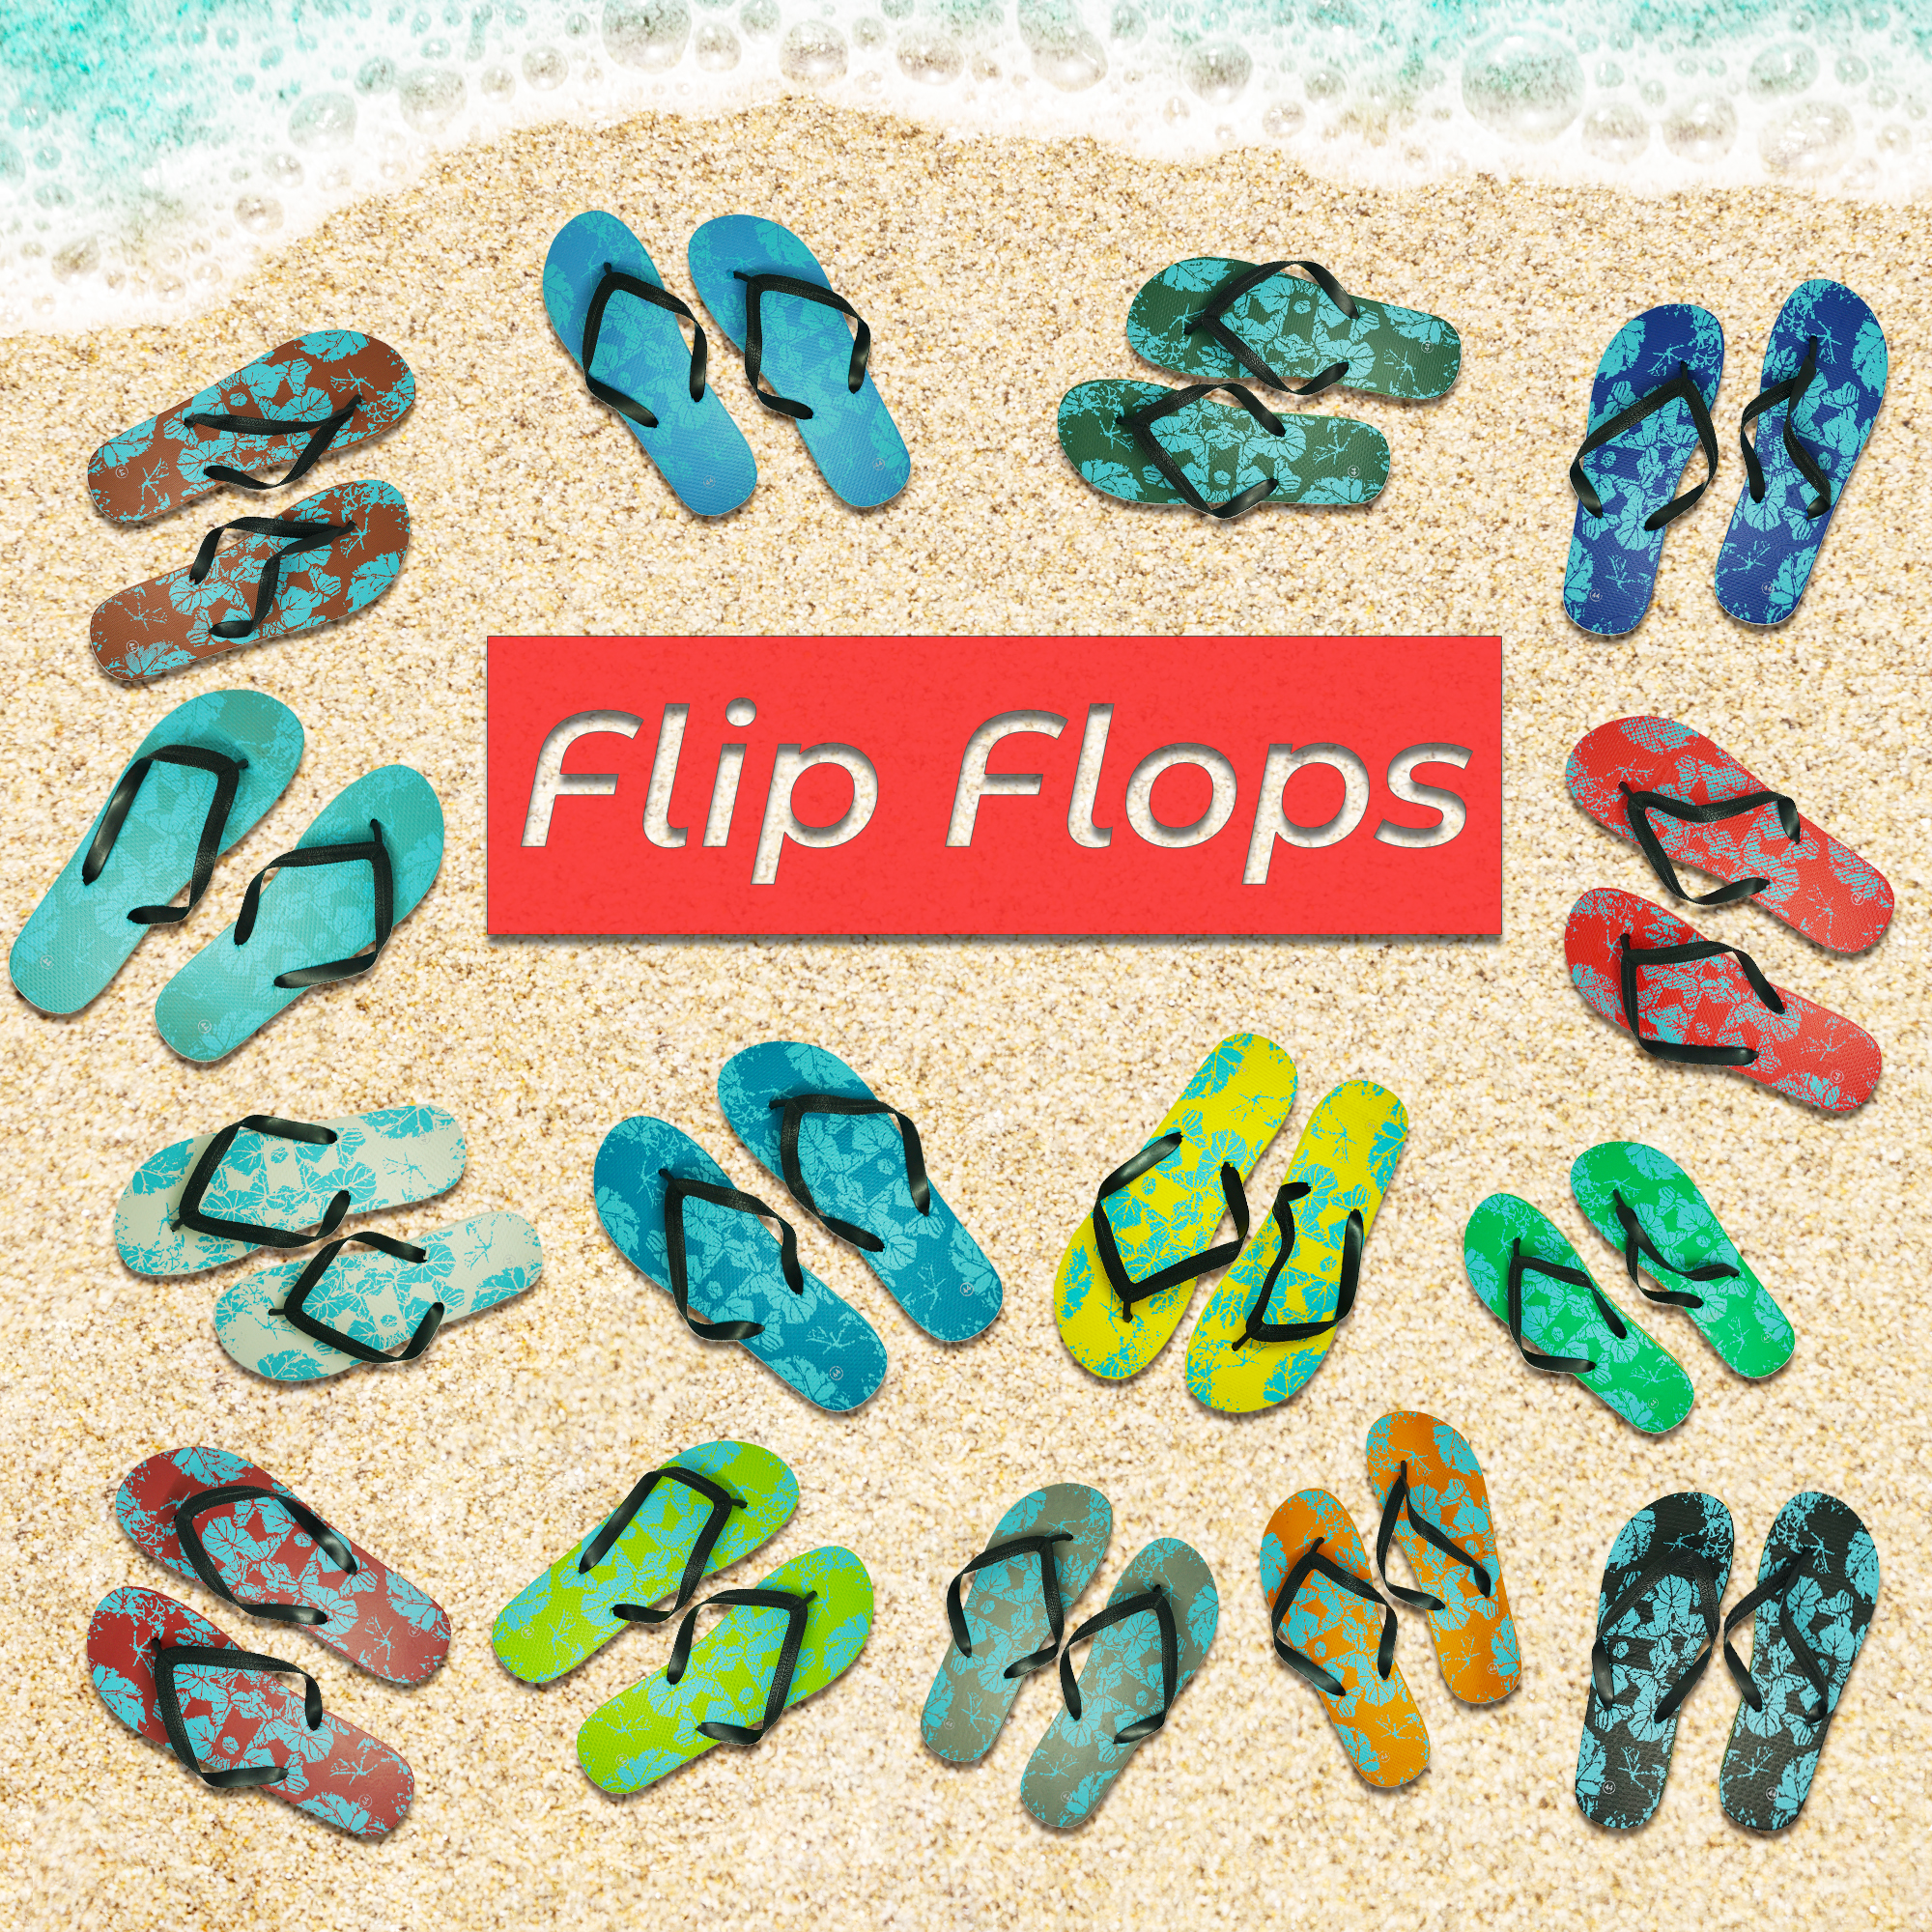 Fashion Home Pinch Non-slip Beach Flops Home Slippers 39/26cm_Mixed color